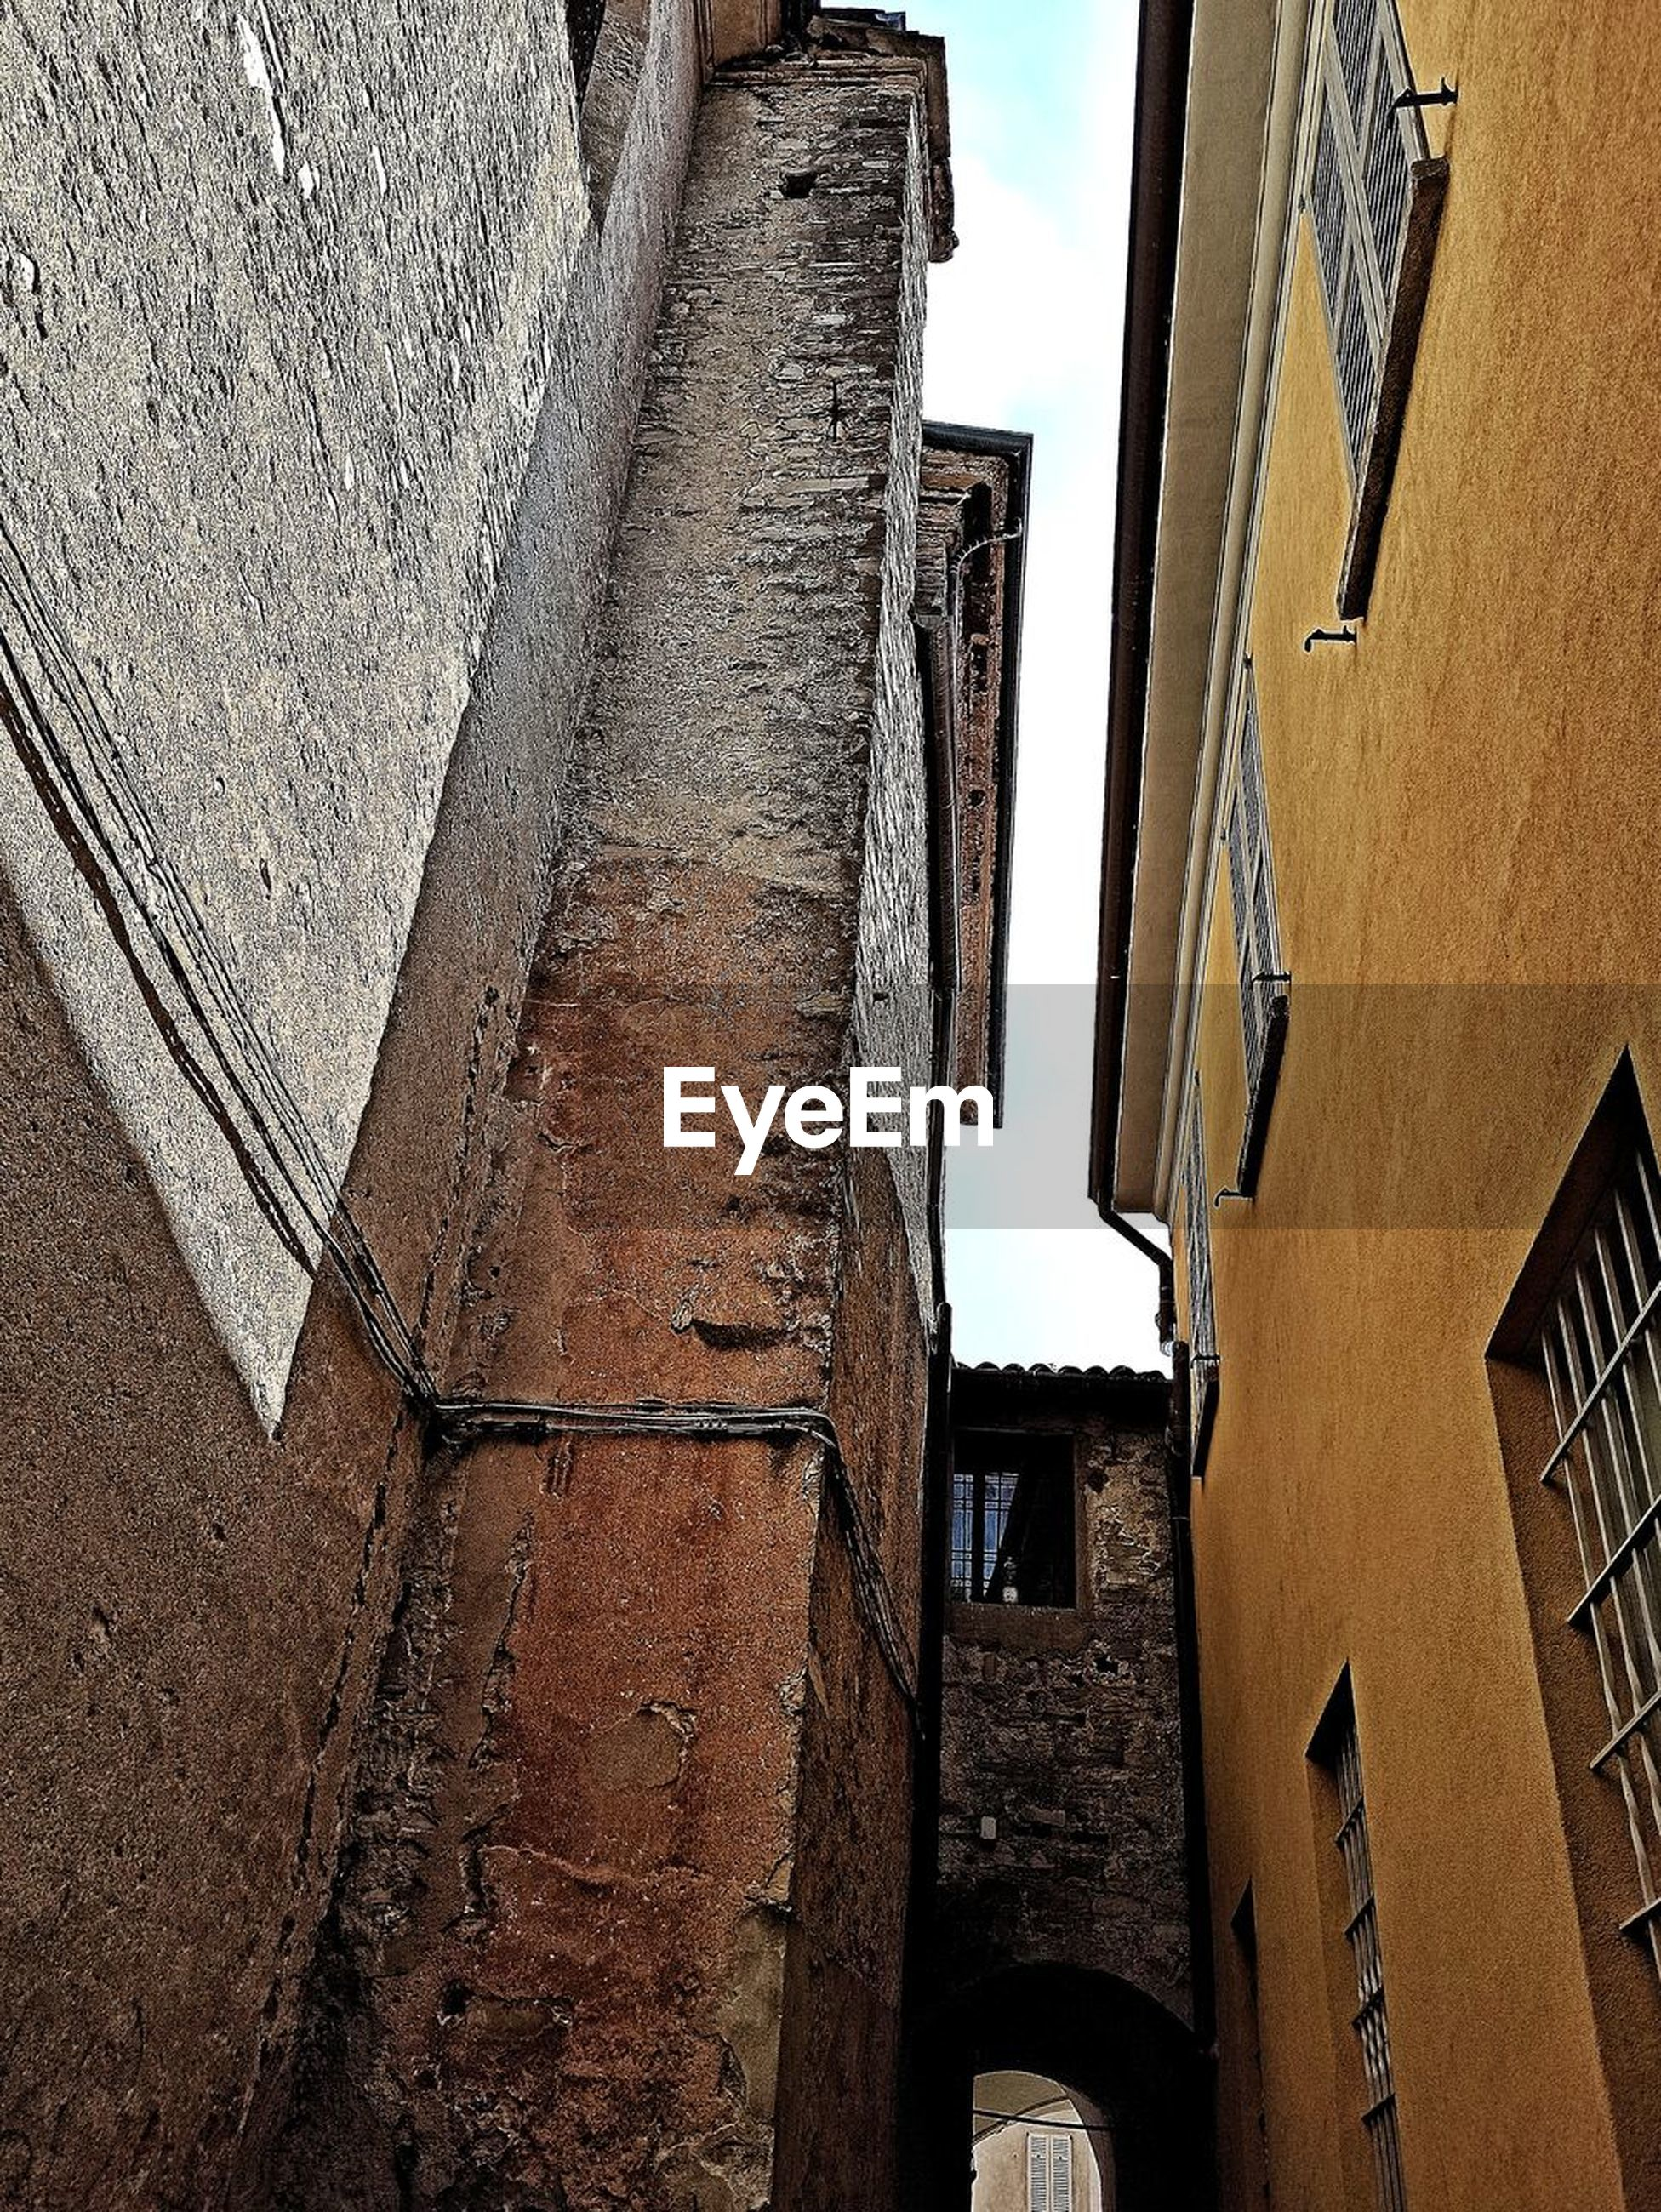 architecture, built structure, building exterior, wall, road, building, alley, low angle view, street, no people, wall - building feature, window, residential district, city, day, infrastructure, urban area, house, nature, outdoors, sky, black, old